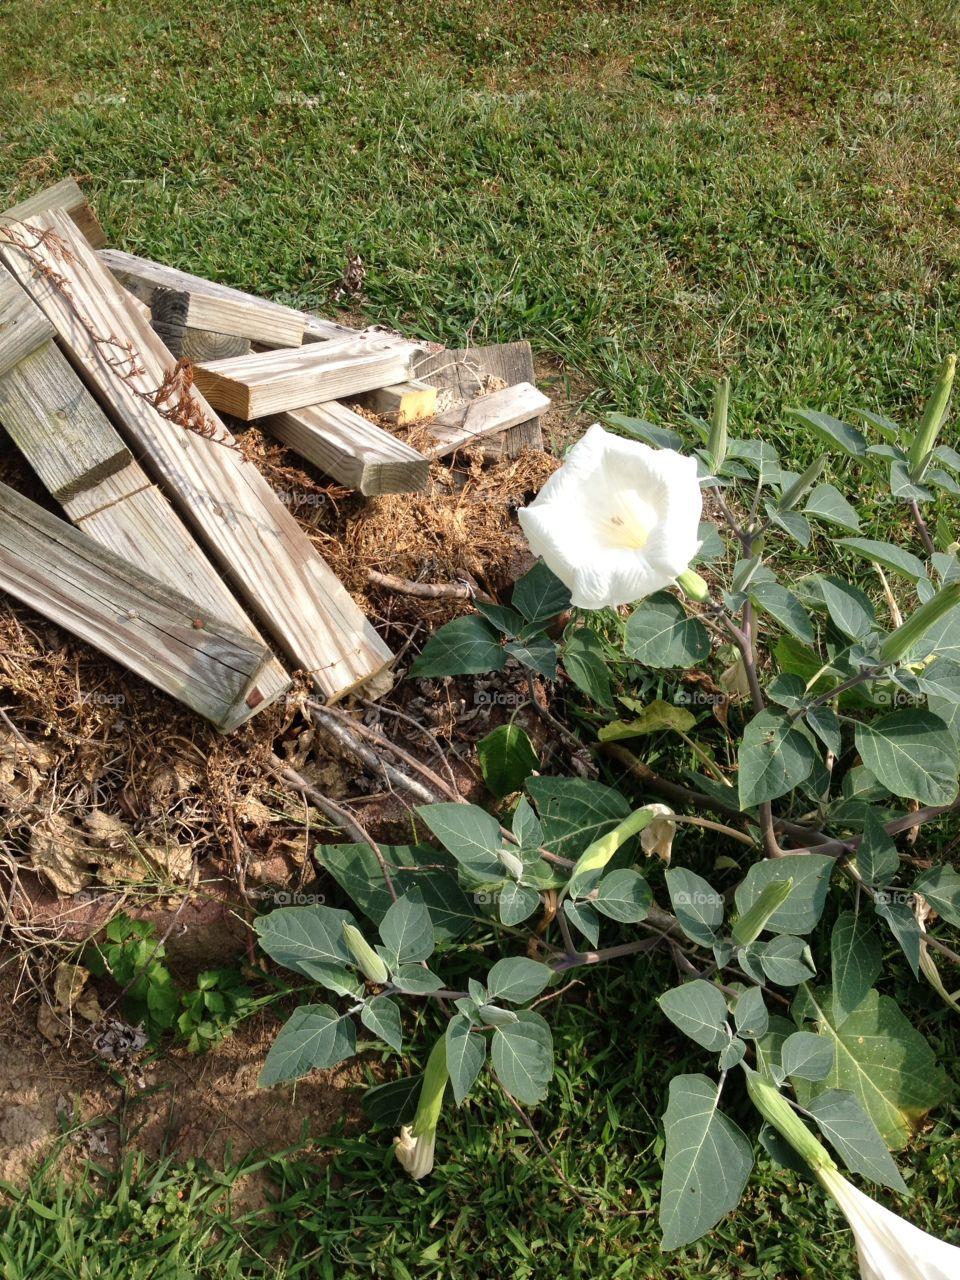 Moonflower in bloom next to a pile of wood